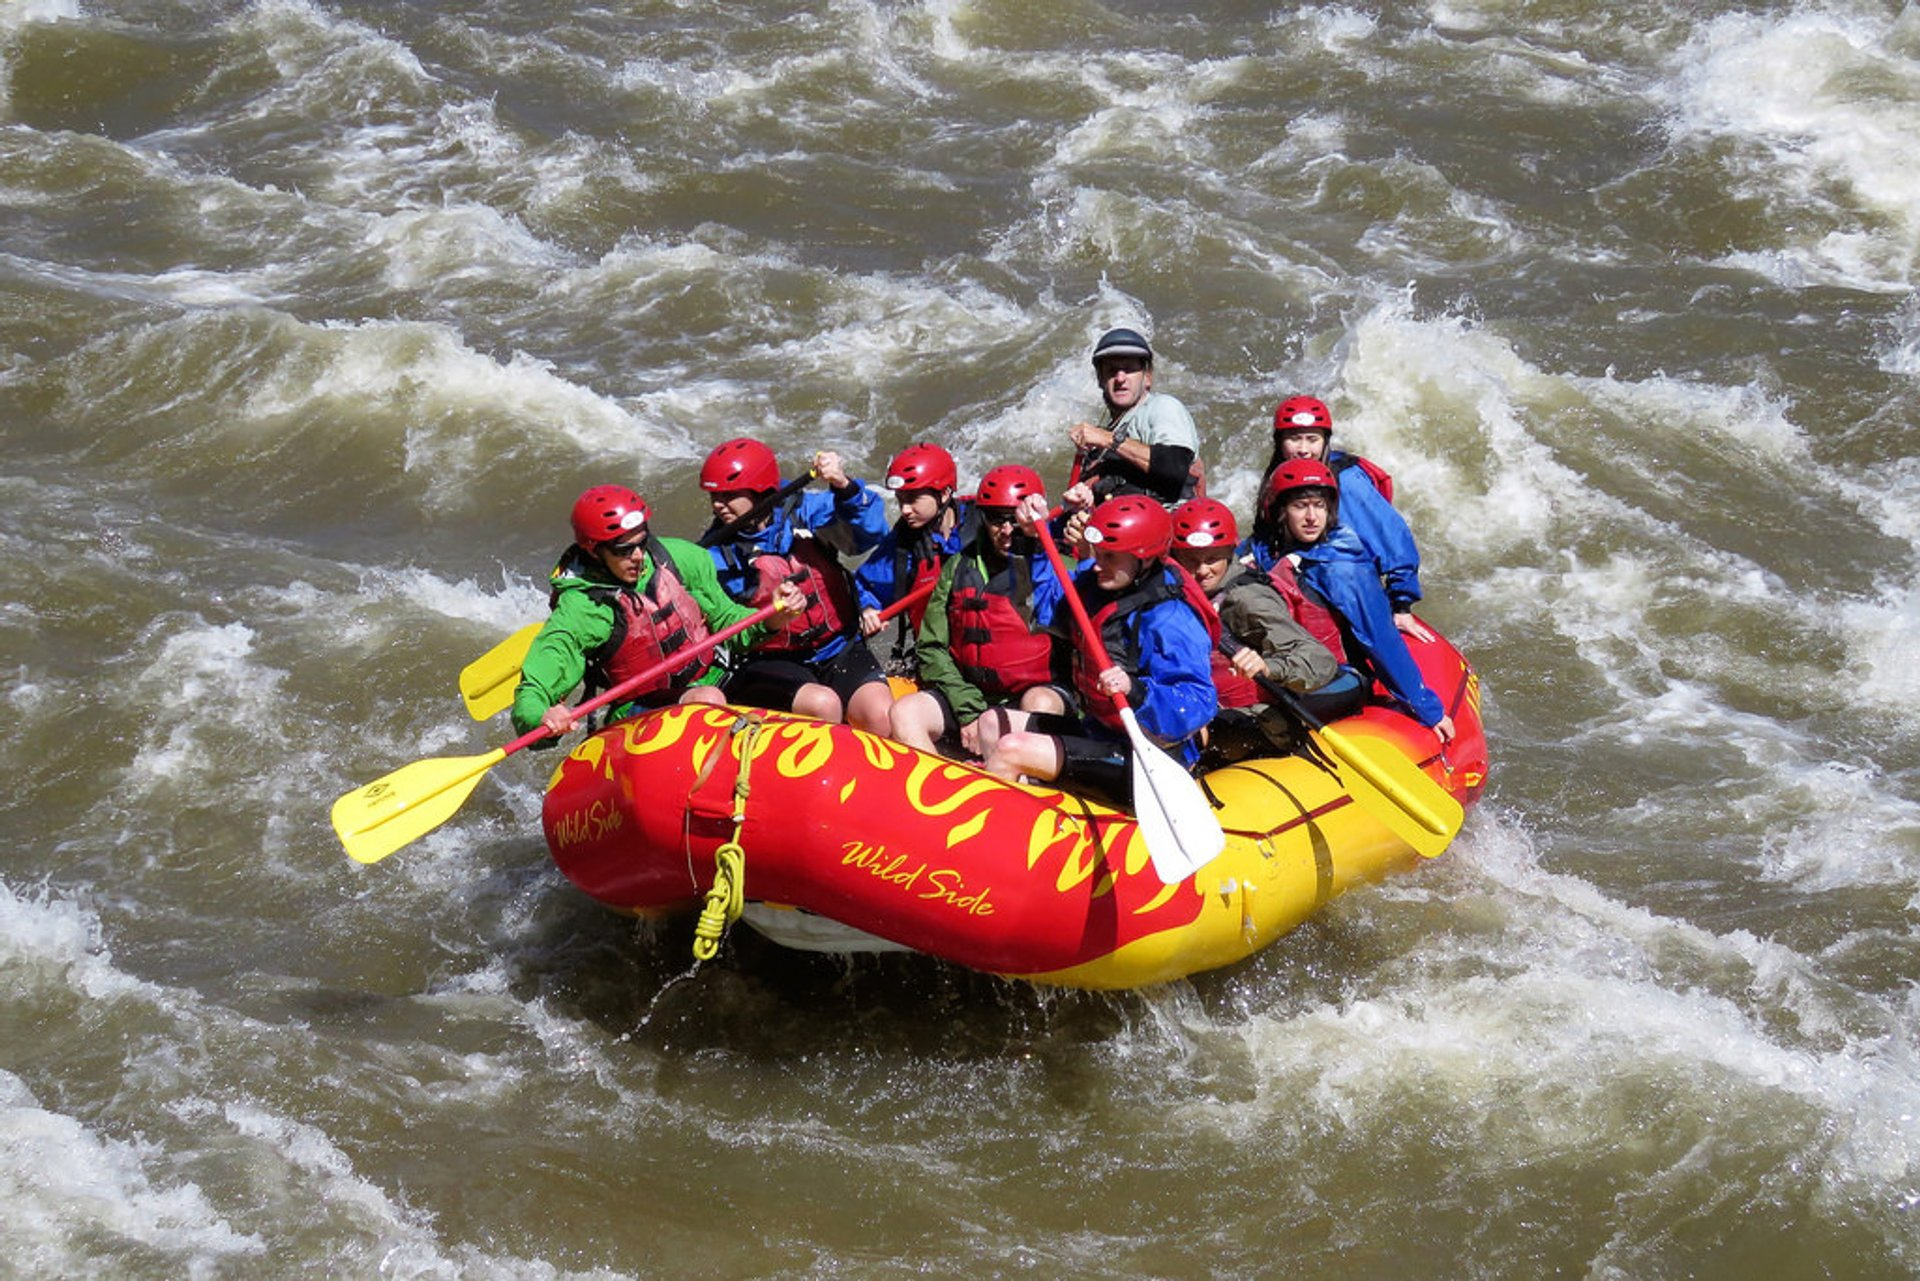 Whitewater Rafting in Colorado 2020 - Best Time